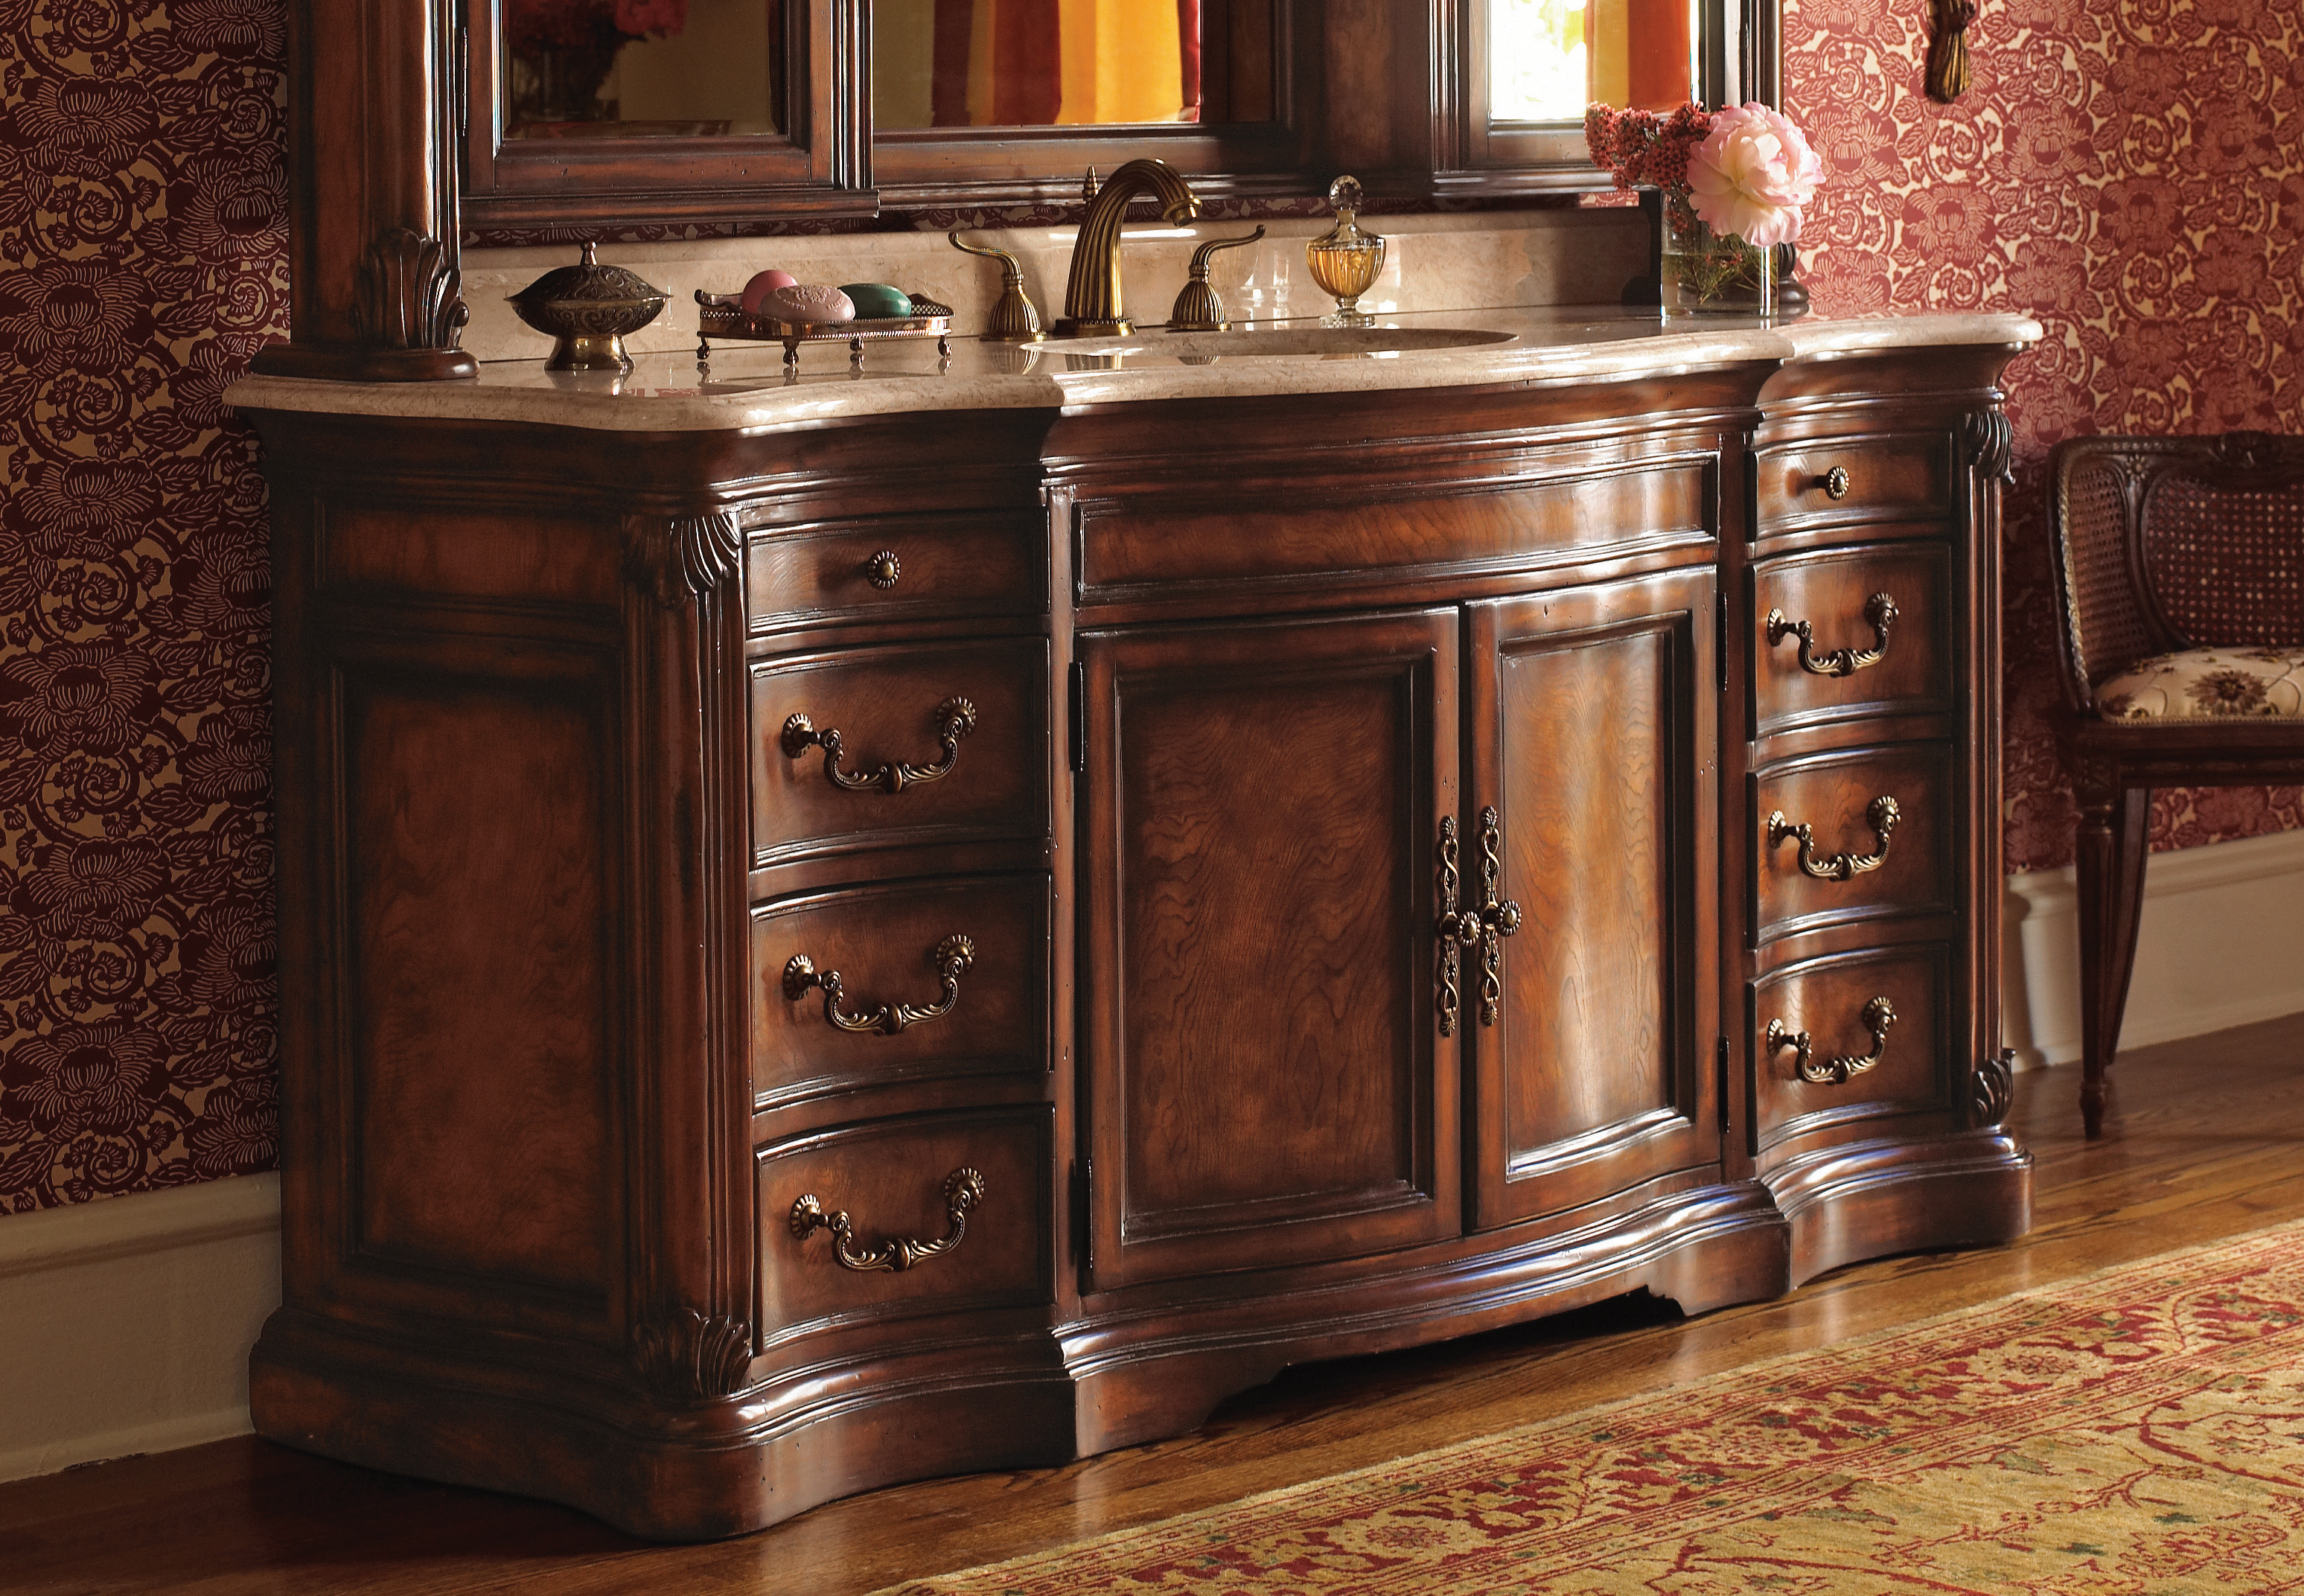 Large Sink Chest Finished In Solid Mahogany And Ash Burl Veneer Perfect For The Strict Traditional Lovers 30daysof Bathroom Decor Vanity Interior Decorating